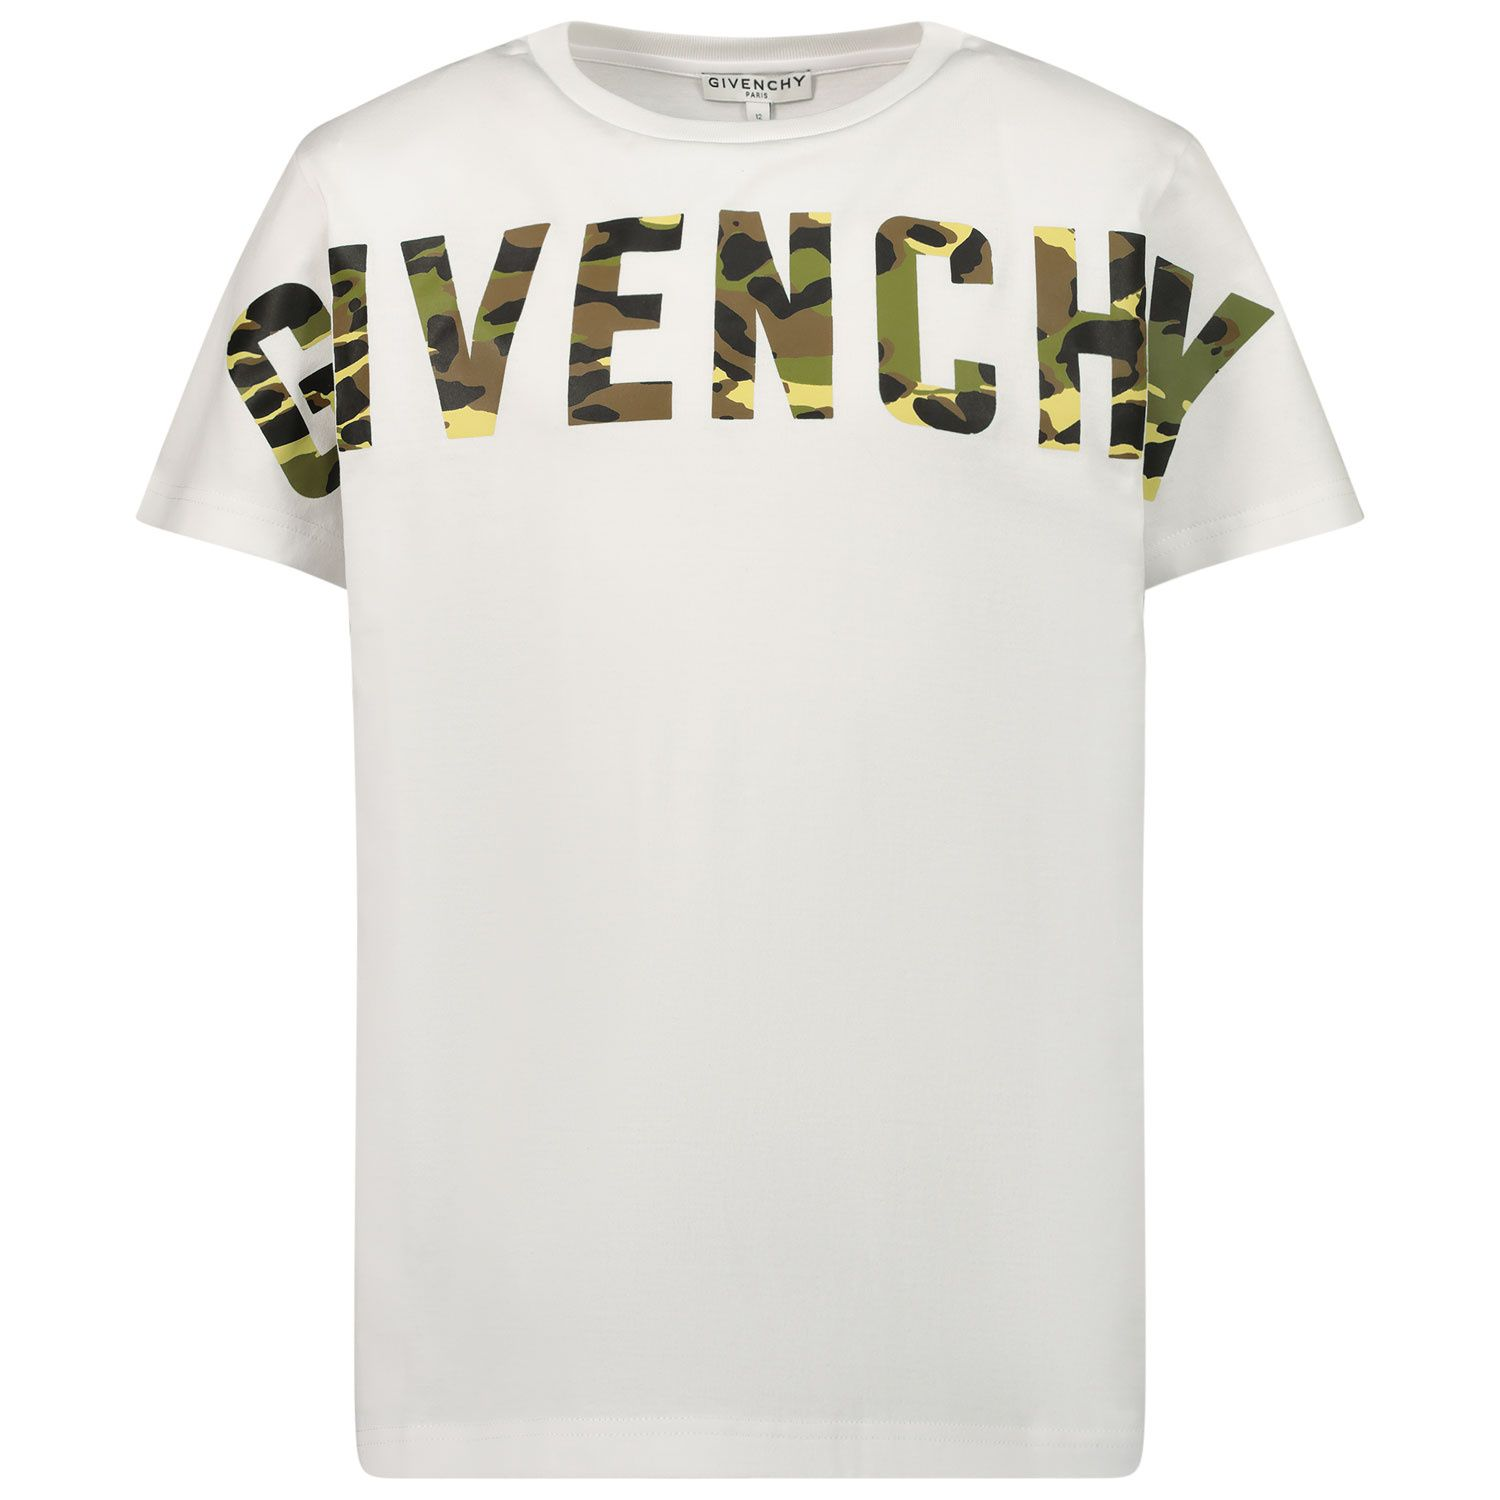 Picture of Givenchy H25248 kids t-shirt white